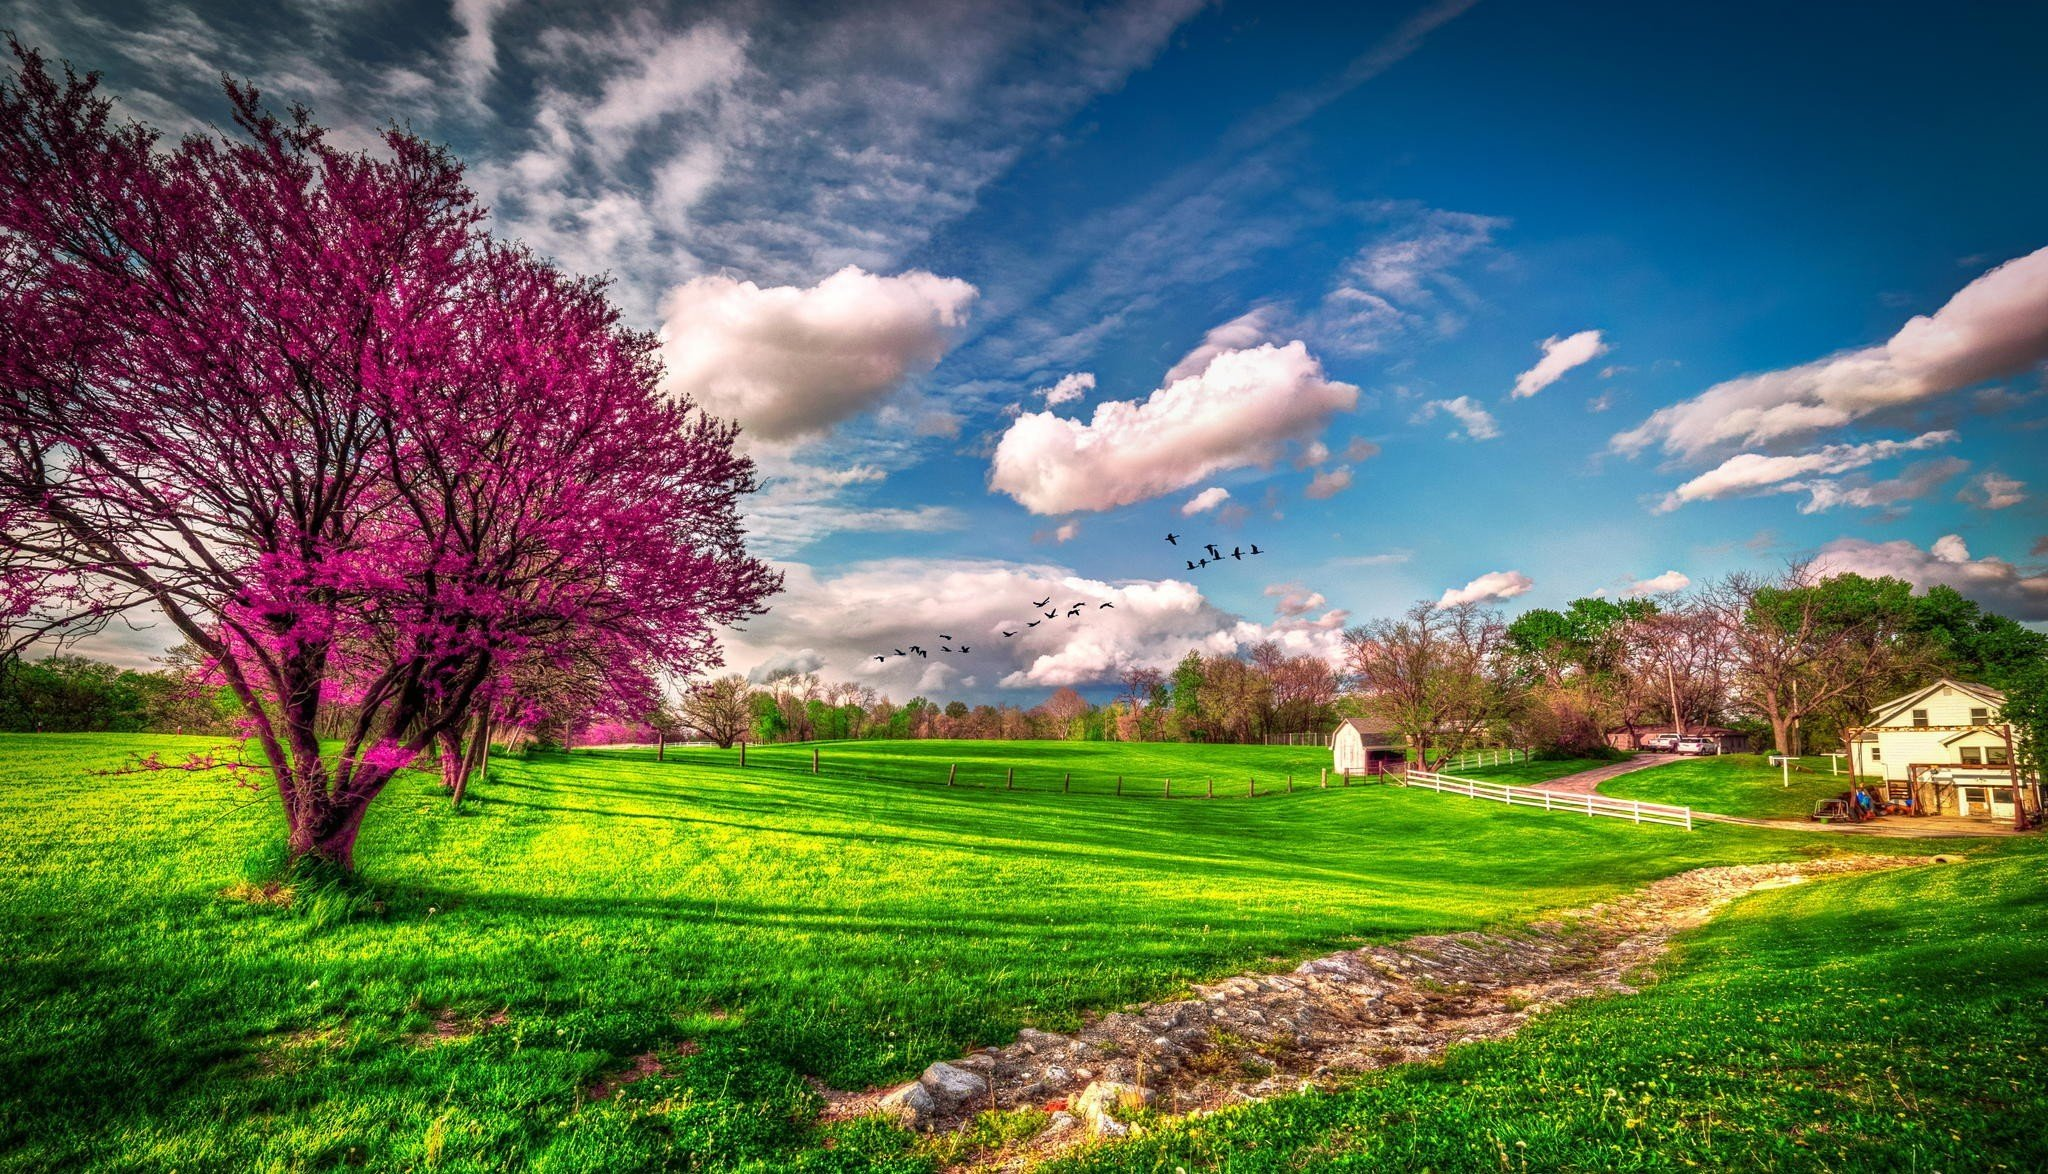 Spring Wallpapers HD download 2048x1174